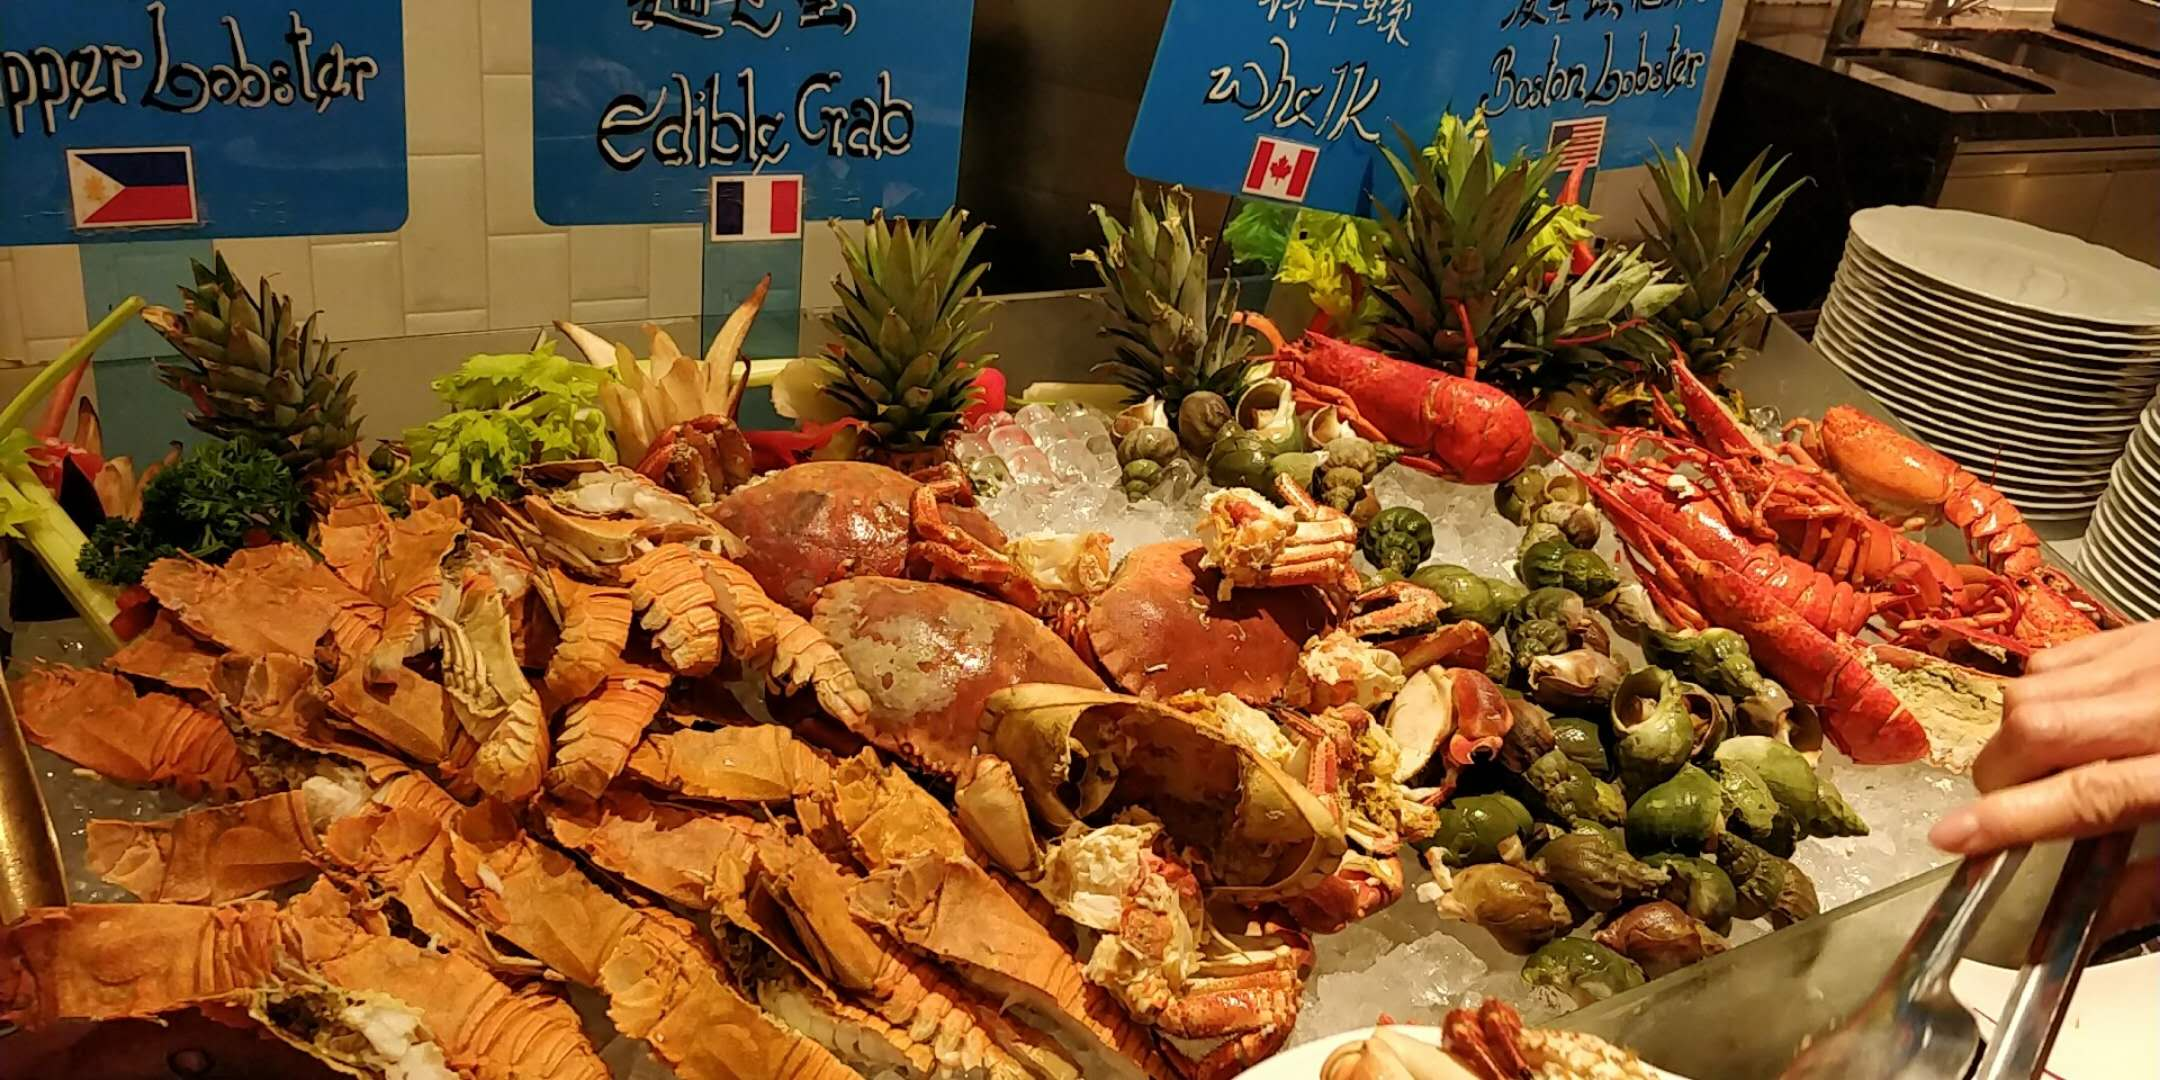 (Macau) High quality, reasonable price seafood buffet in Macau- Brasserie de Paris